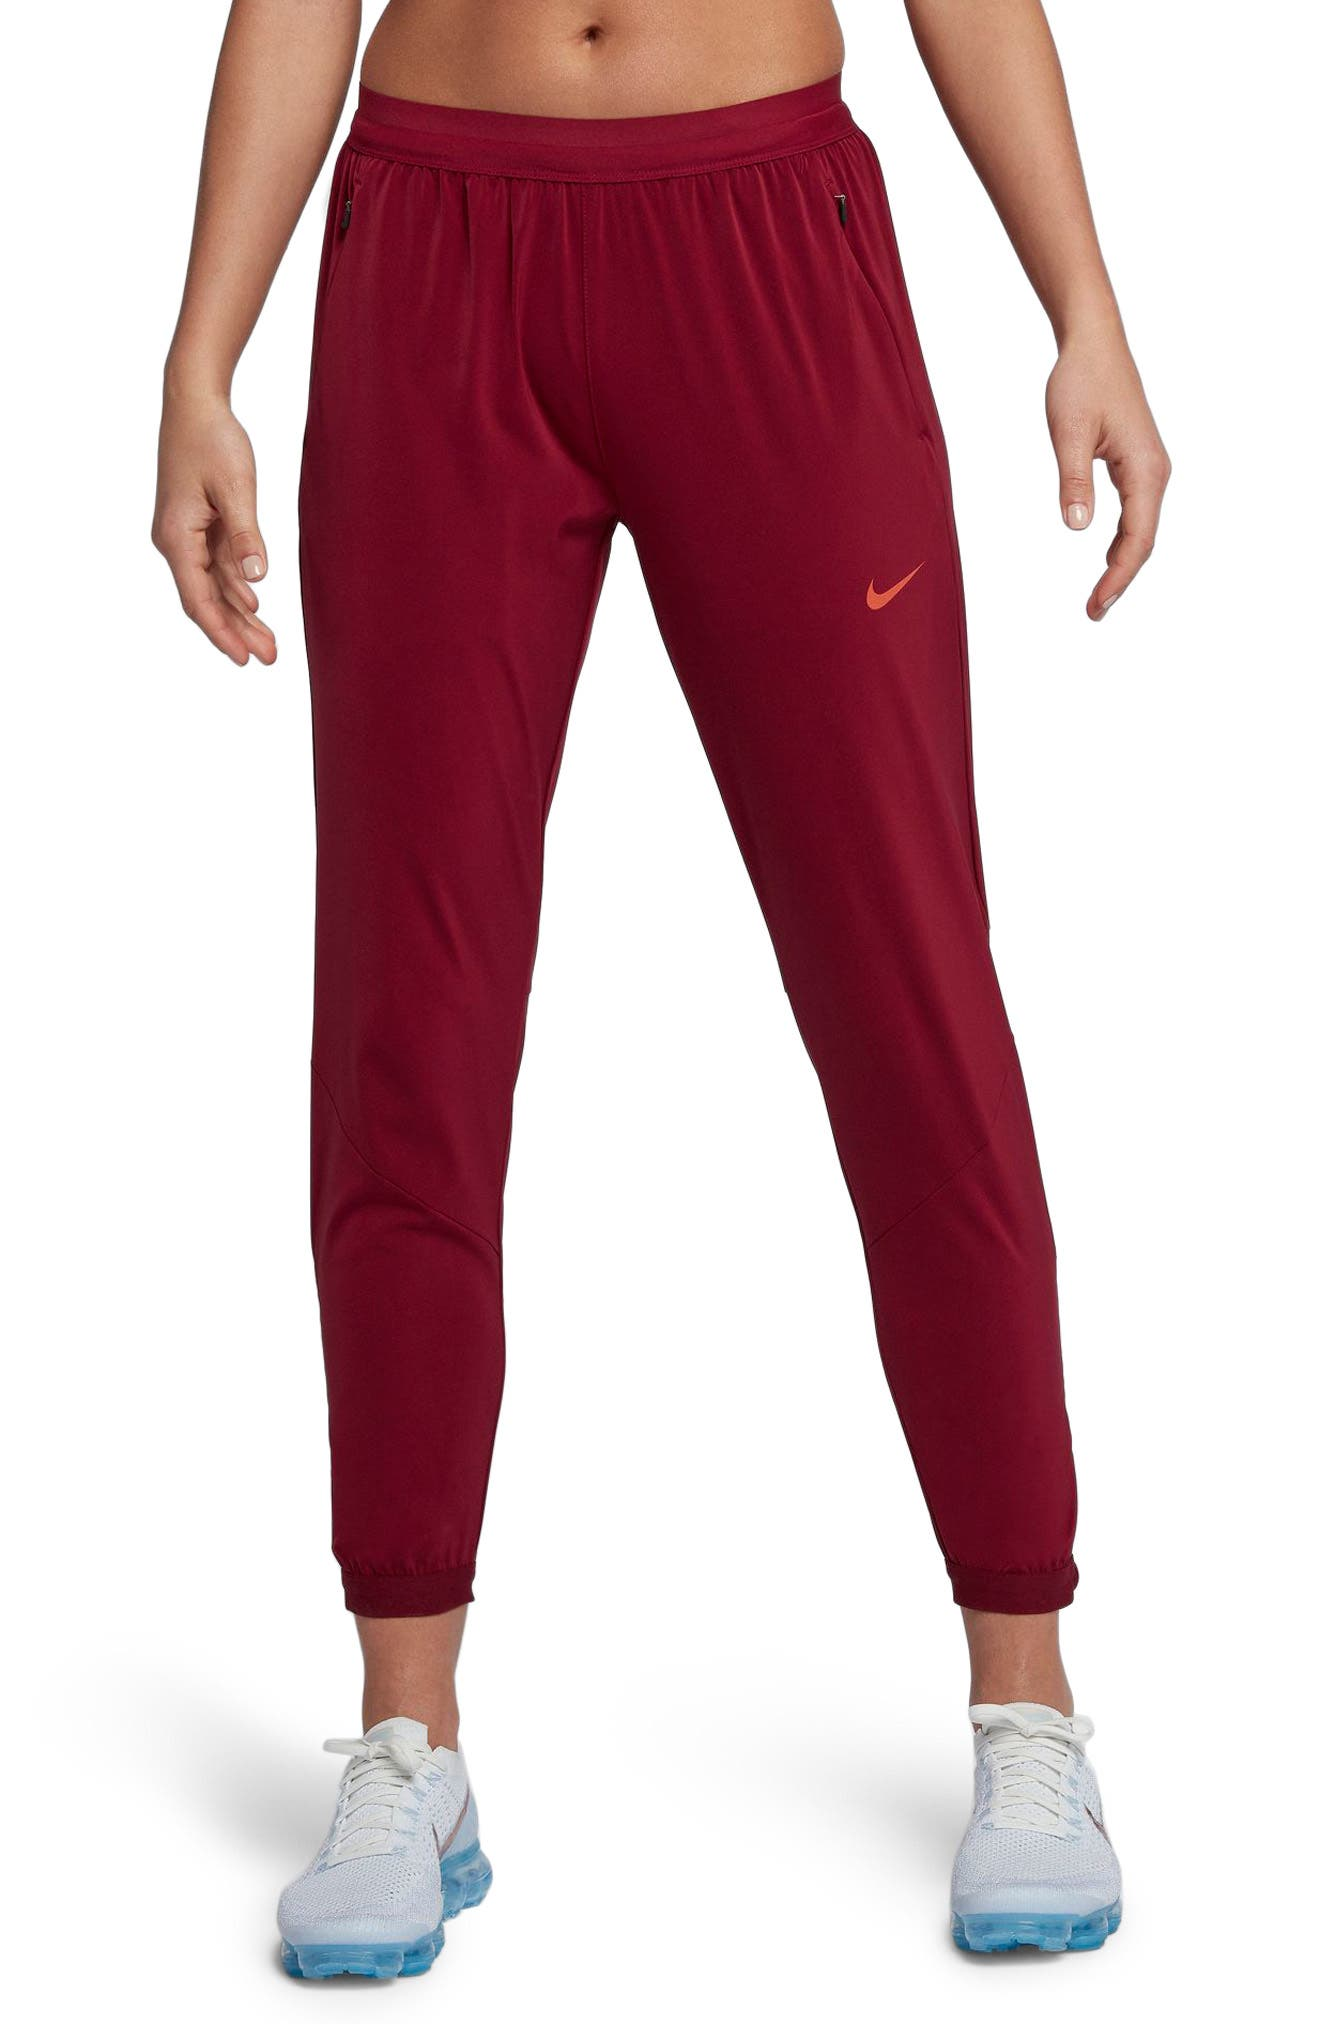 Women's Dry Running Stadium Pants,                         Main,                         color, Team Red/ Vintage Coral